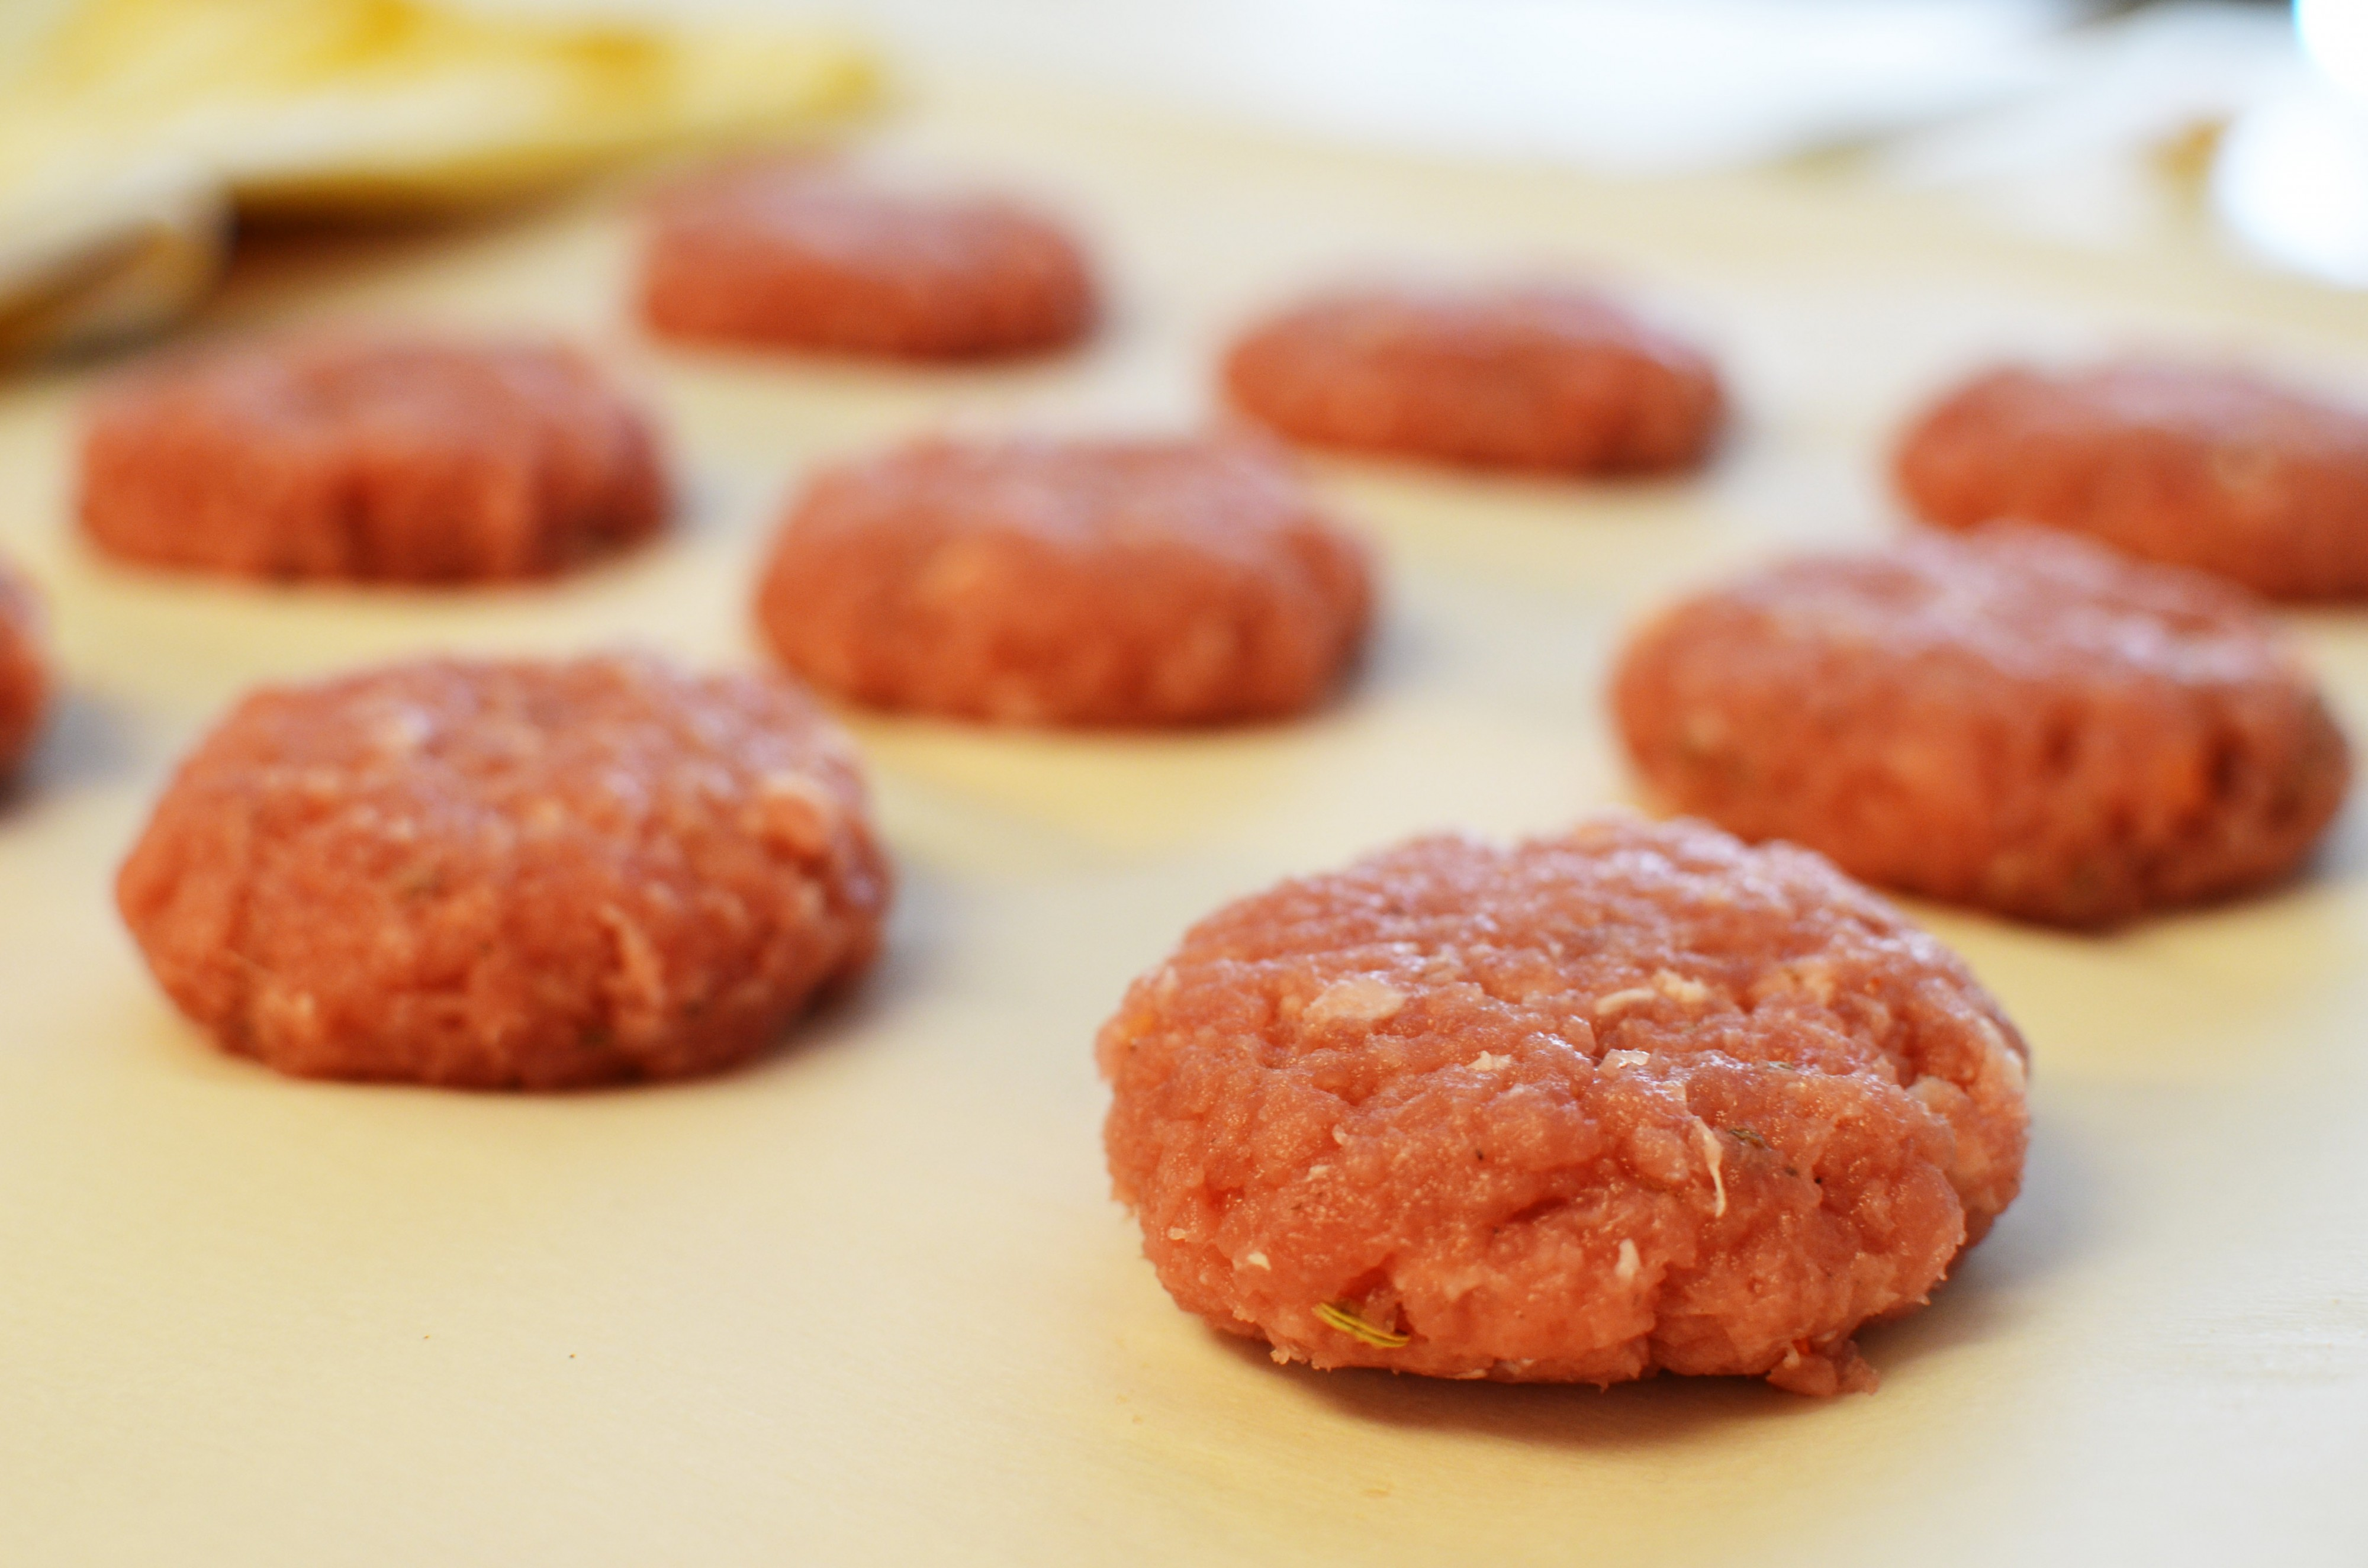 Raw Breakfast Sausage Patty | Sprig and Flours